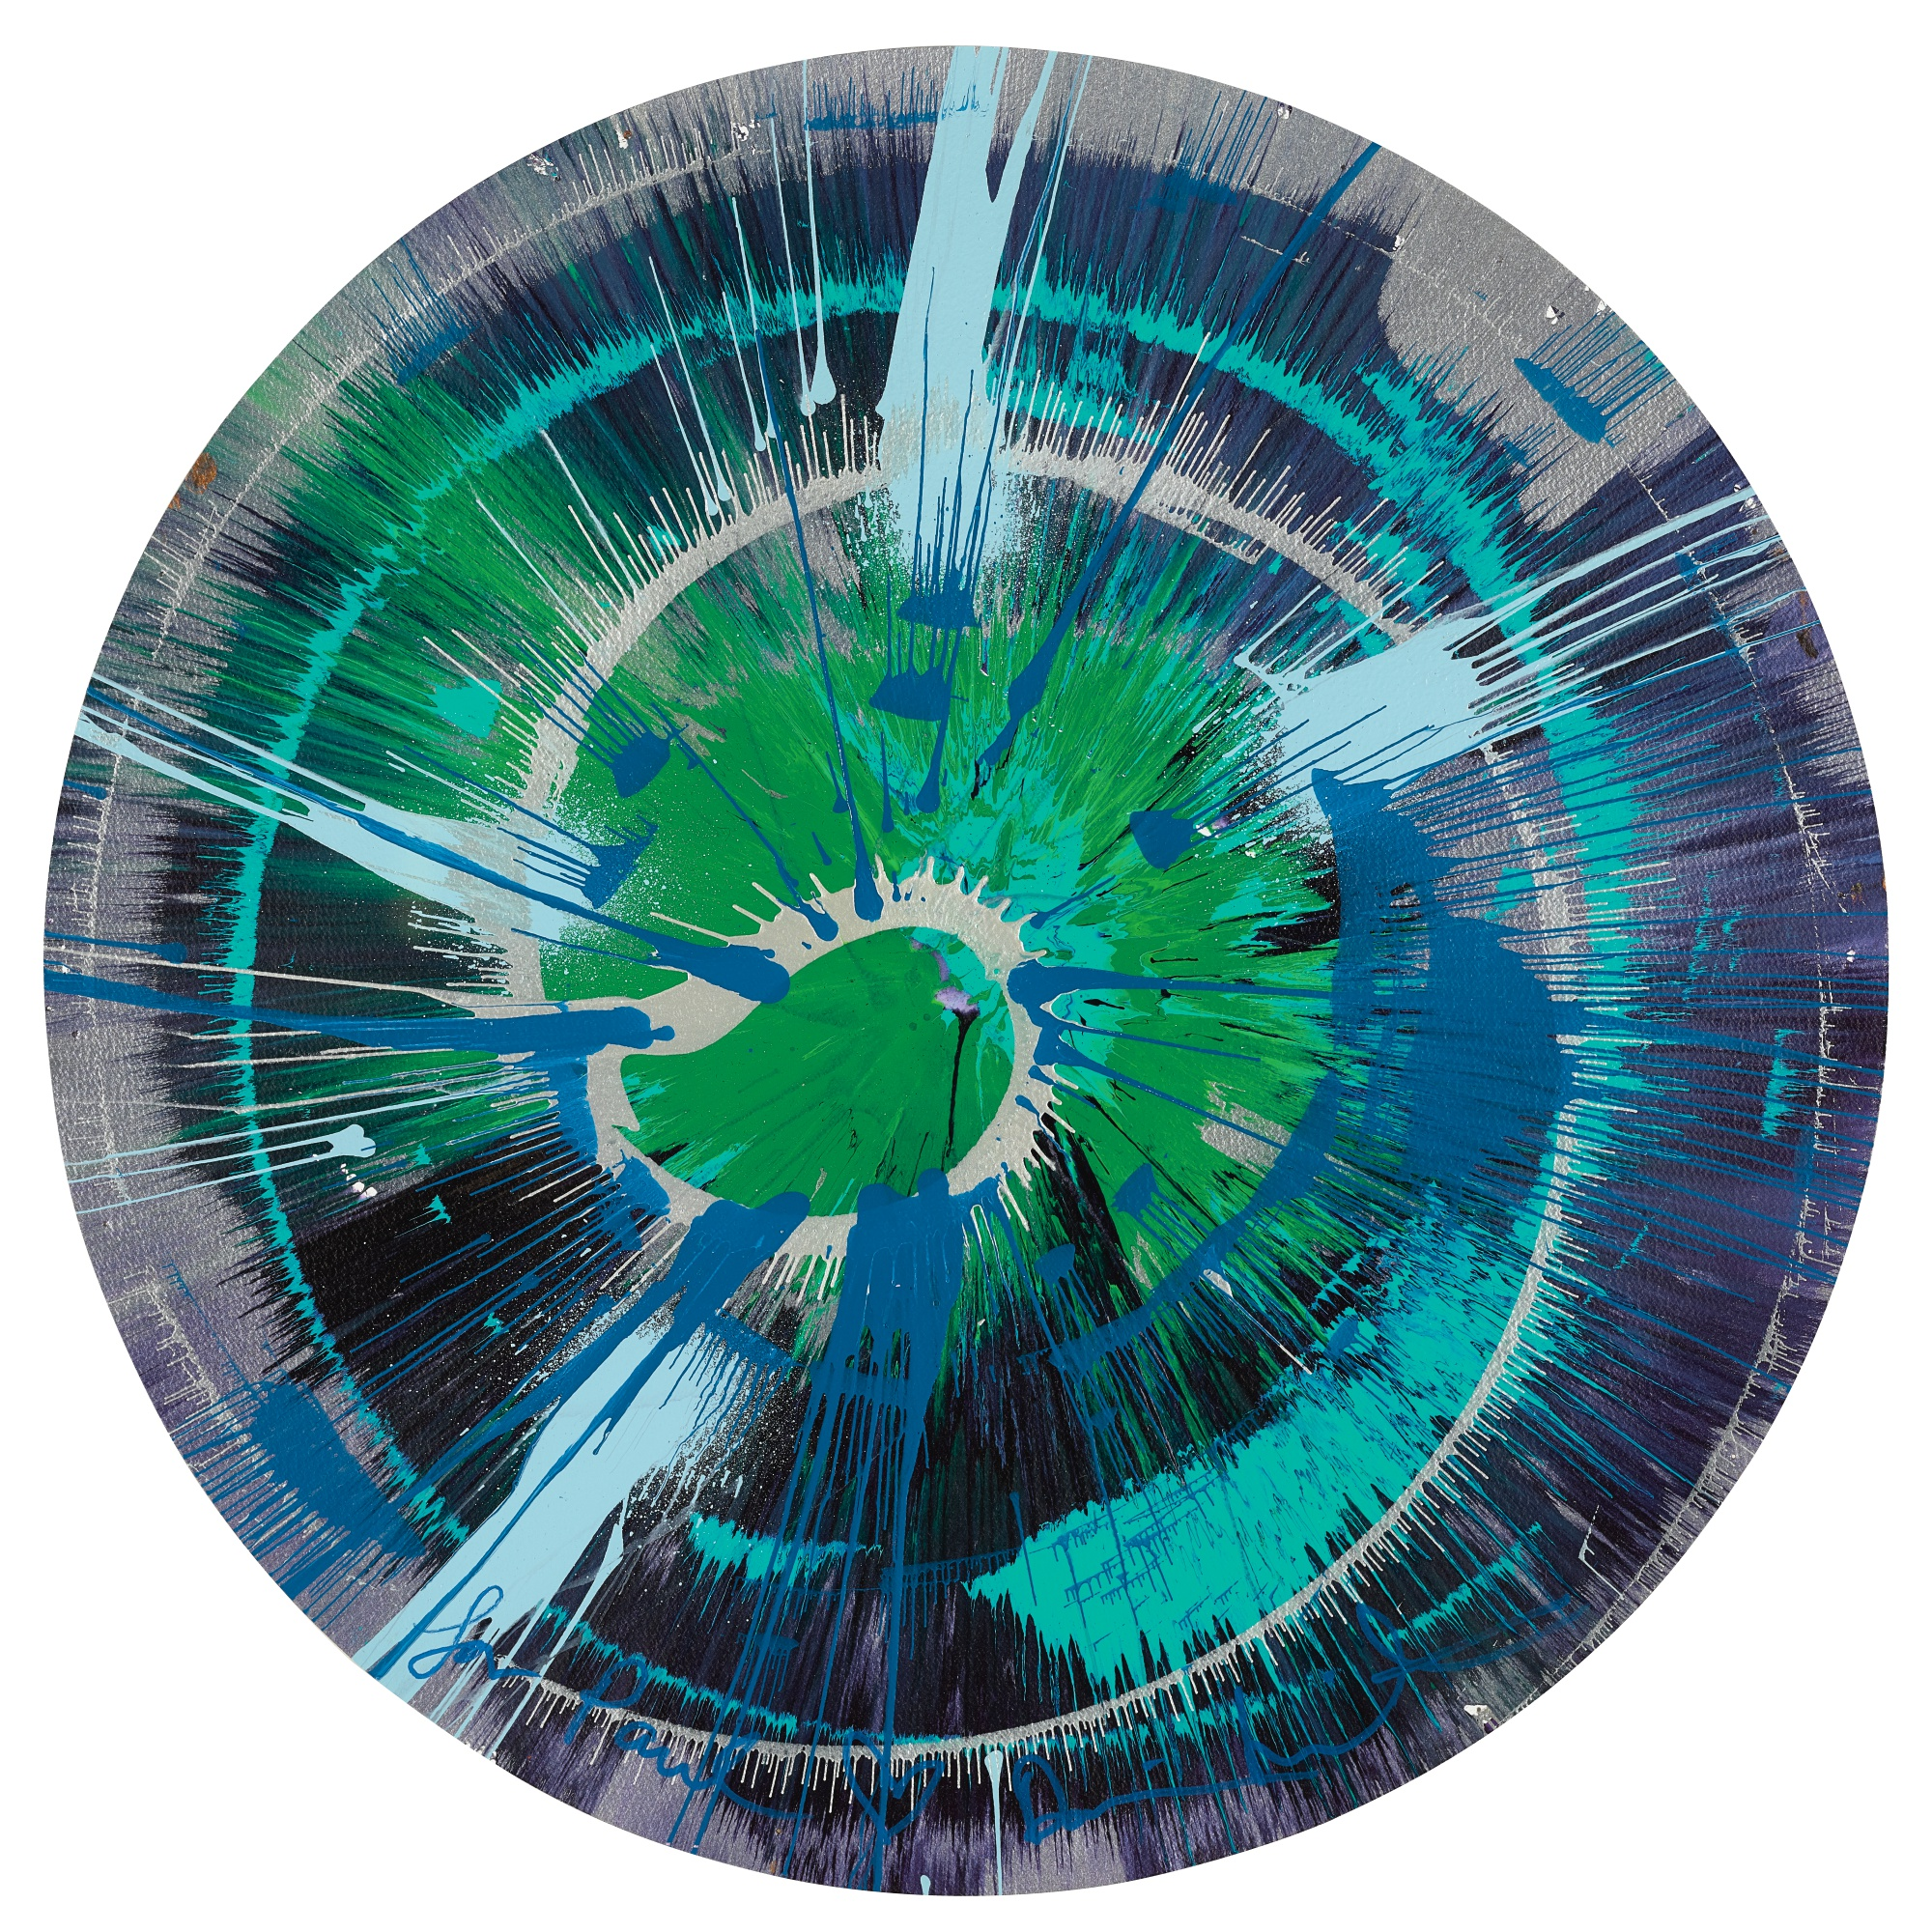 DAMIEN HIRST |  BEAUTIFUL EXPLODING BLUEBERRY SUNDAE SPIN PAINTING FOR PAUL